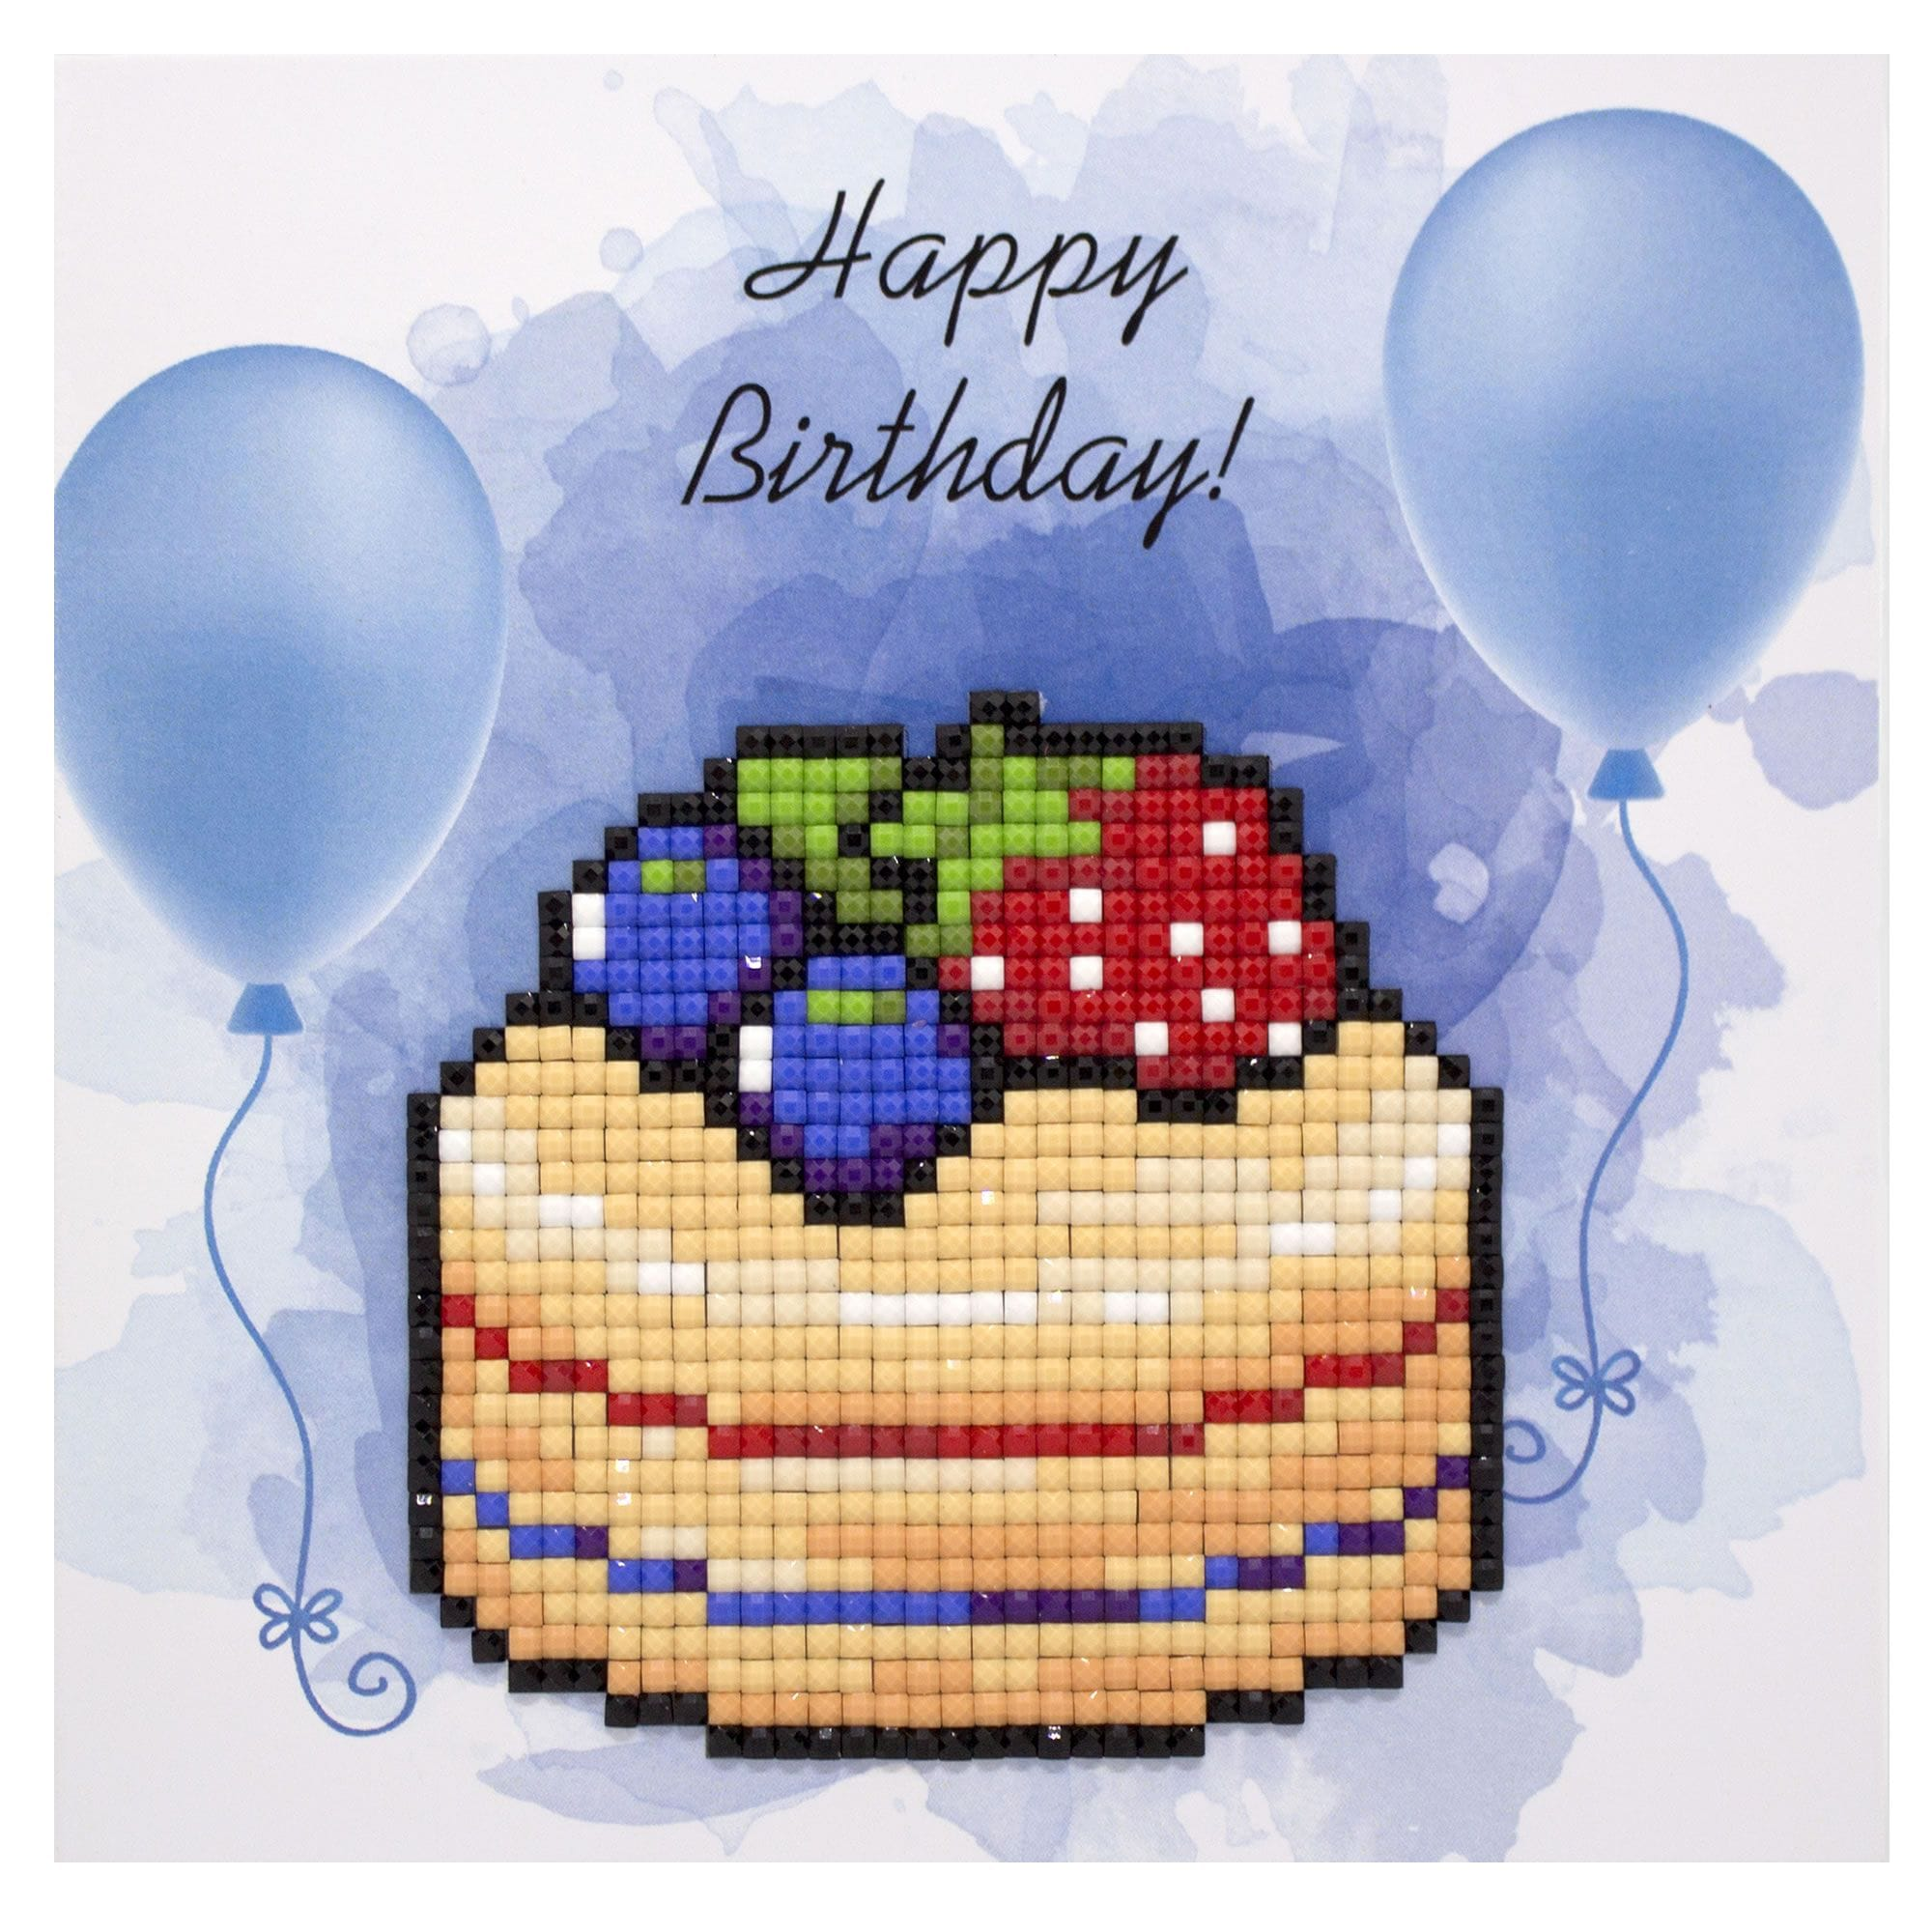 Outstanding Happy Birthday Cake Diamond Painting Postcard Kit Craftyarts Co Uk Funny Birthday Cards Online Aeocydamsfinfo